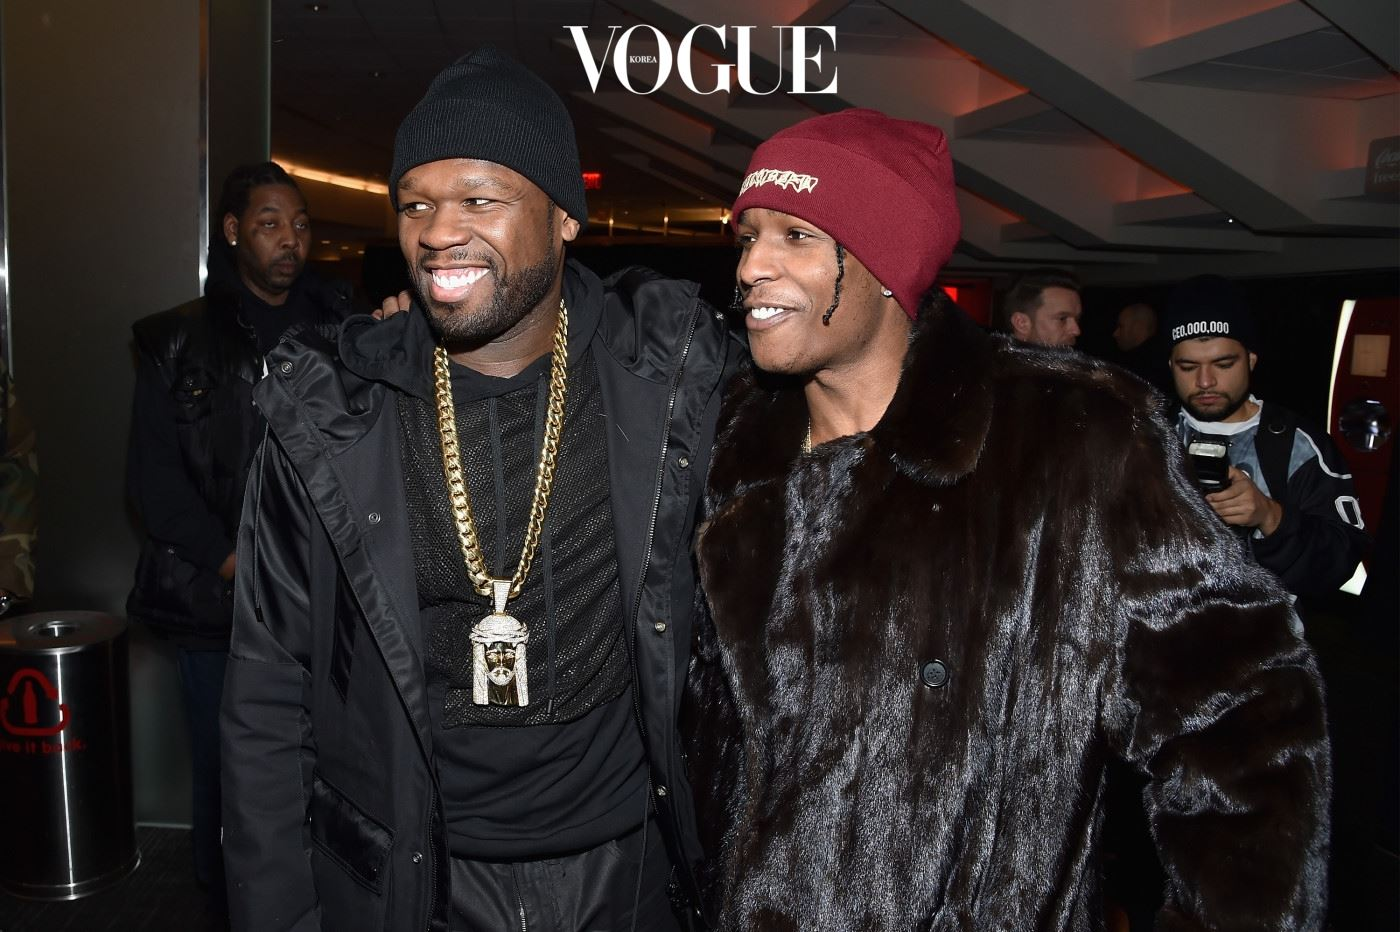 NEW YORK, NY - FEBRUARY 11:  Rappers 50 Cent (L) and ASAP Rocky attend Kanye West Yeezy Season 3 on February 11, 2016 in New York City.  (Photo by Dimitrios Kambouris/Getty Images for Yeezy Season 3)